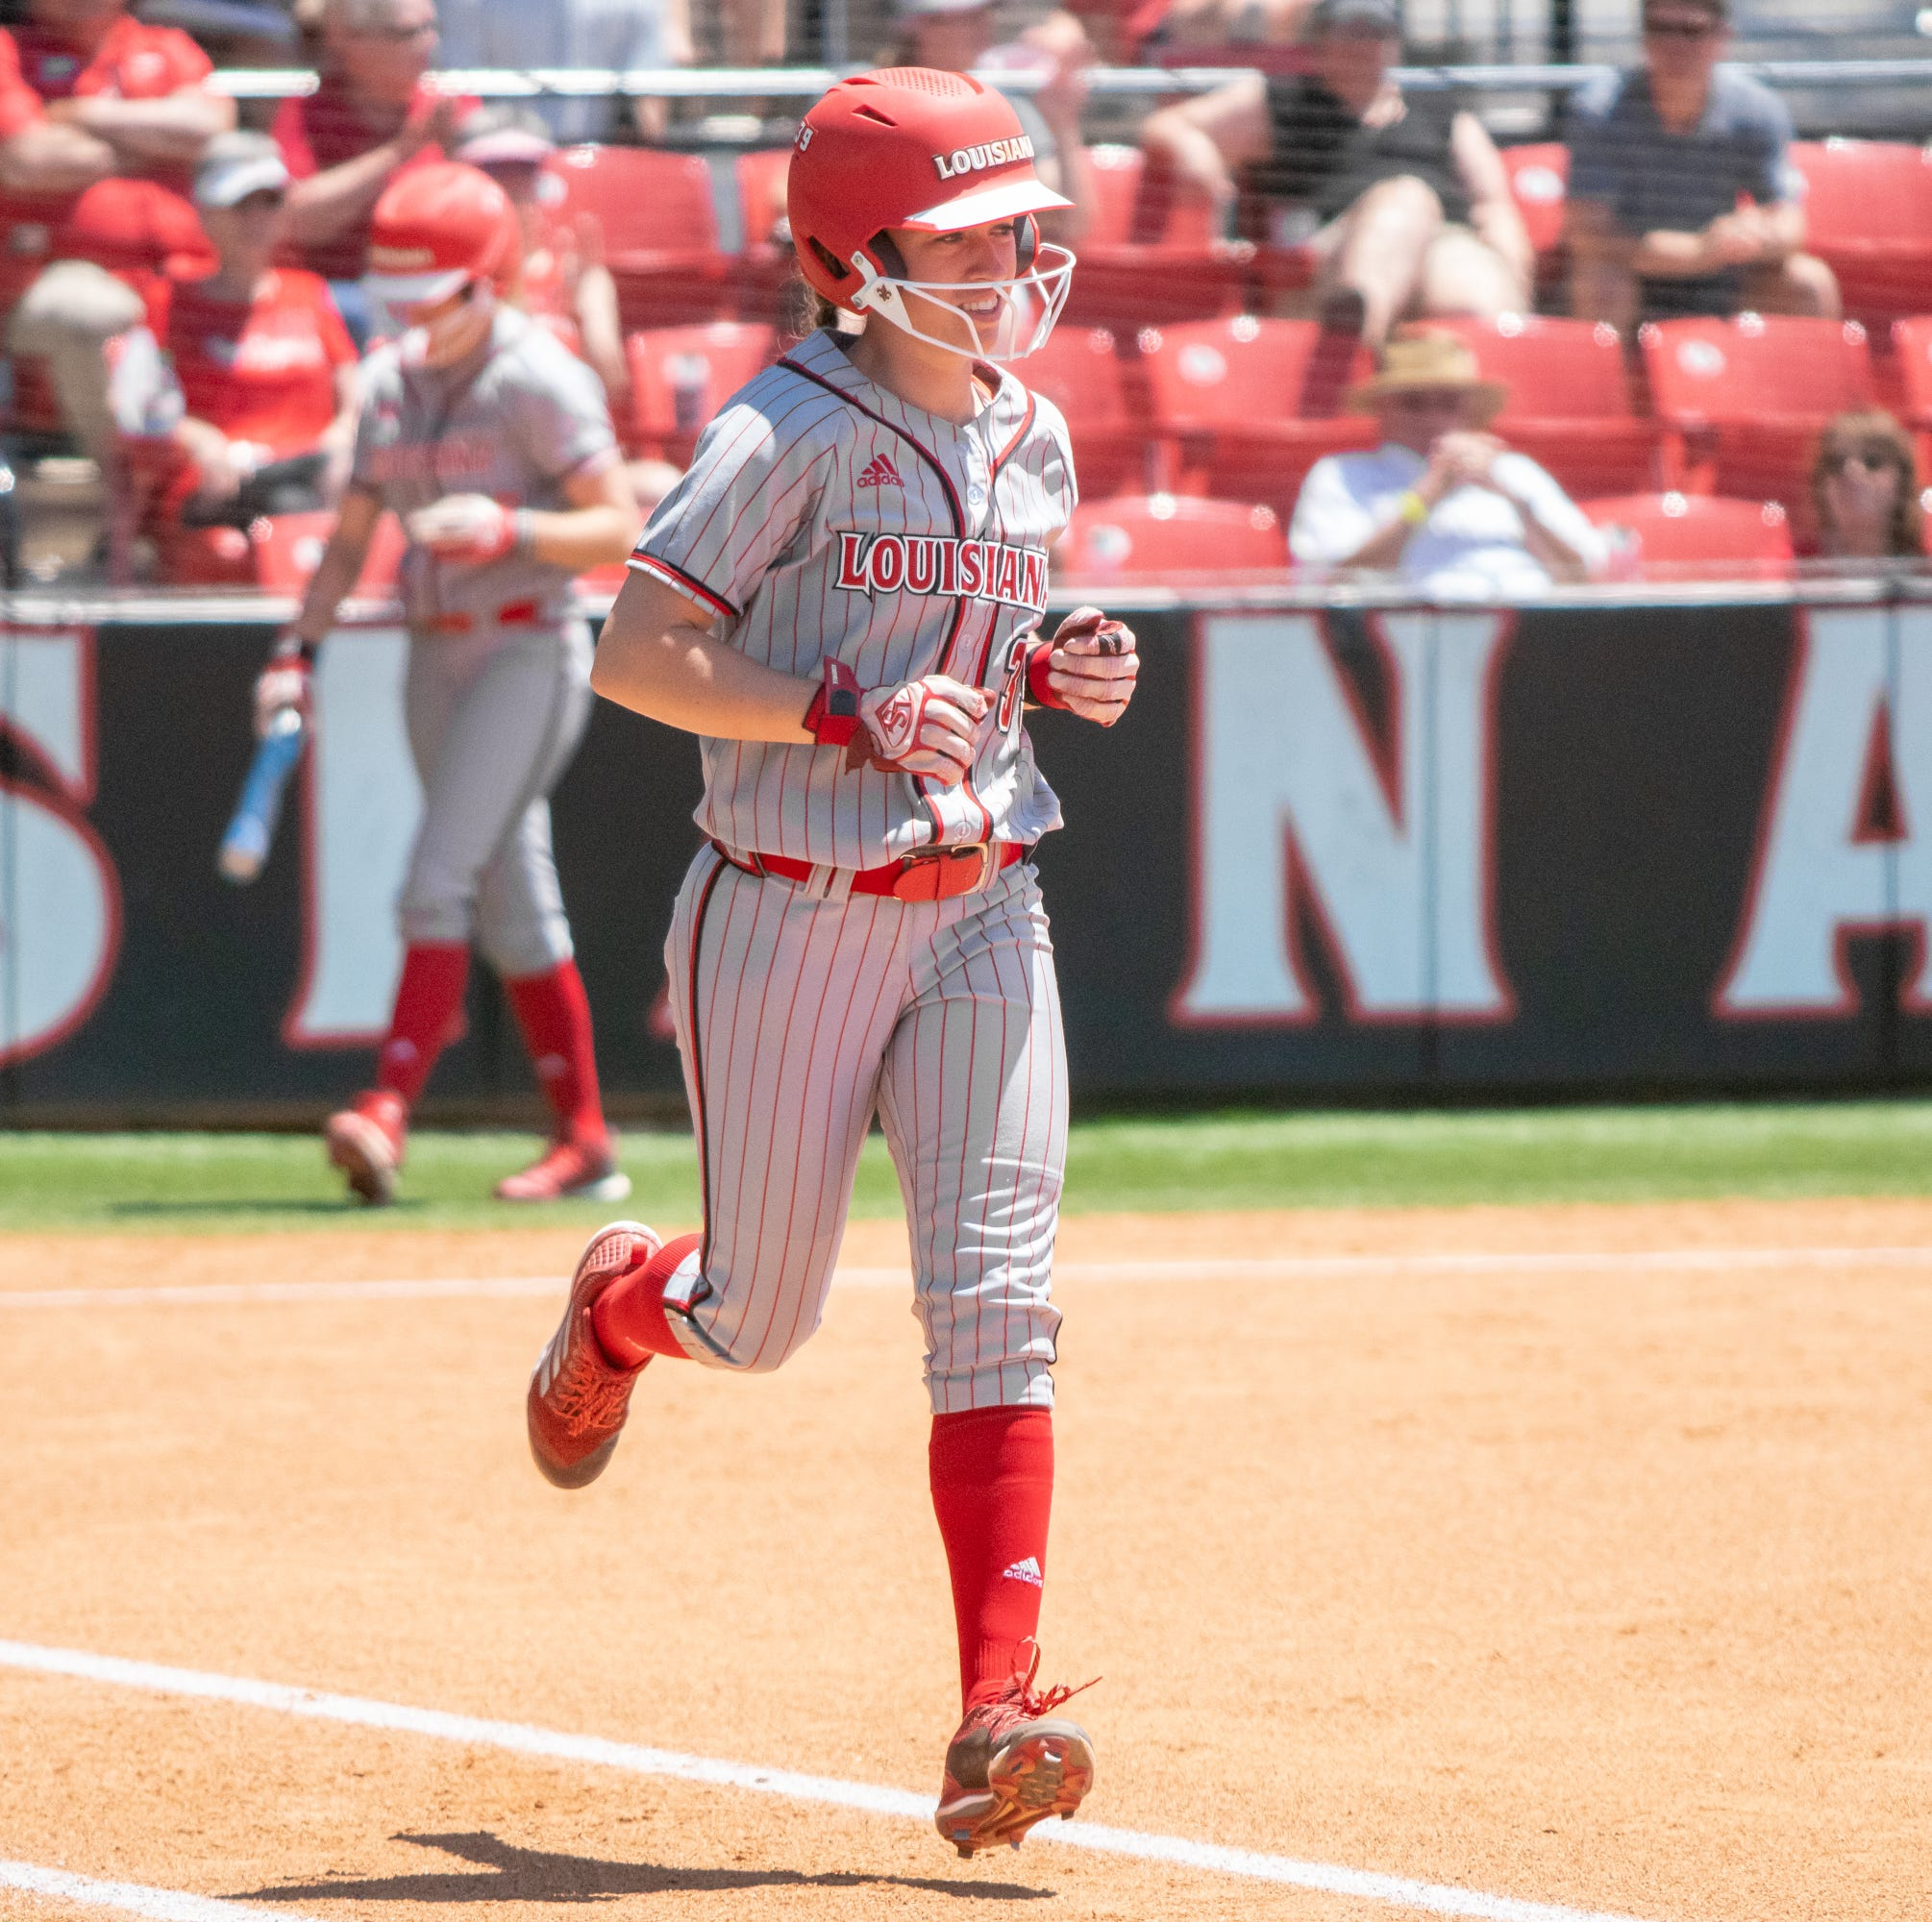 UL Softball heading to Oxford, Miss. for Regional